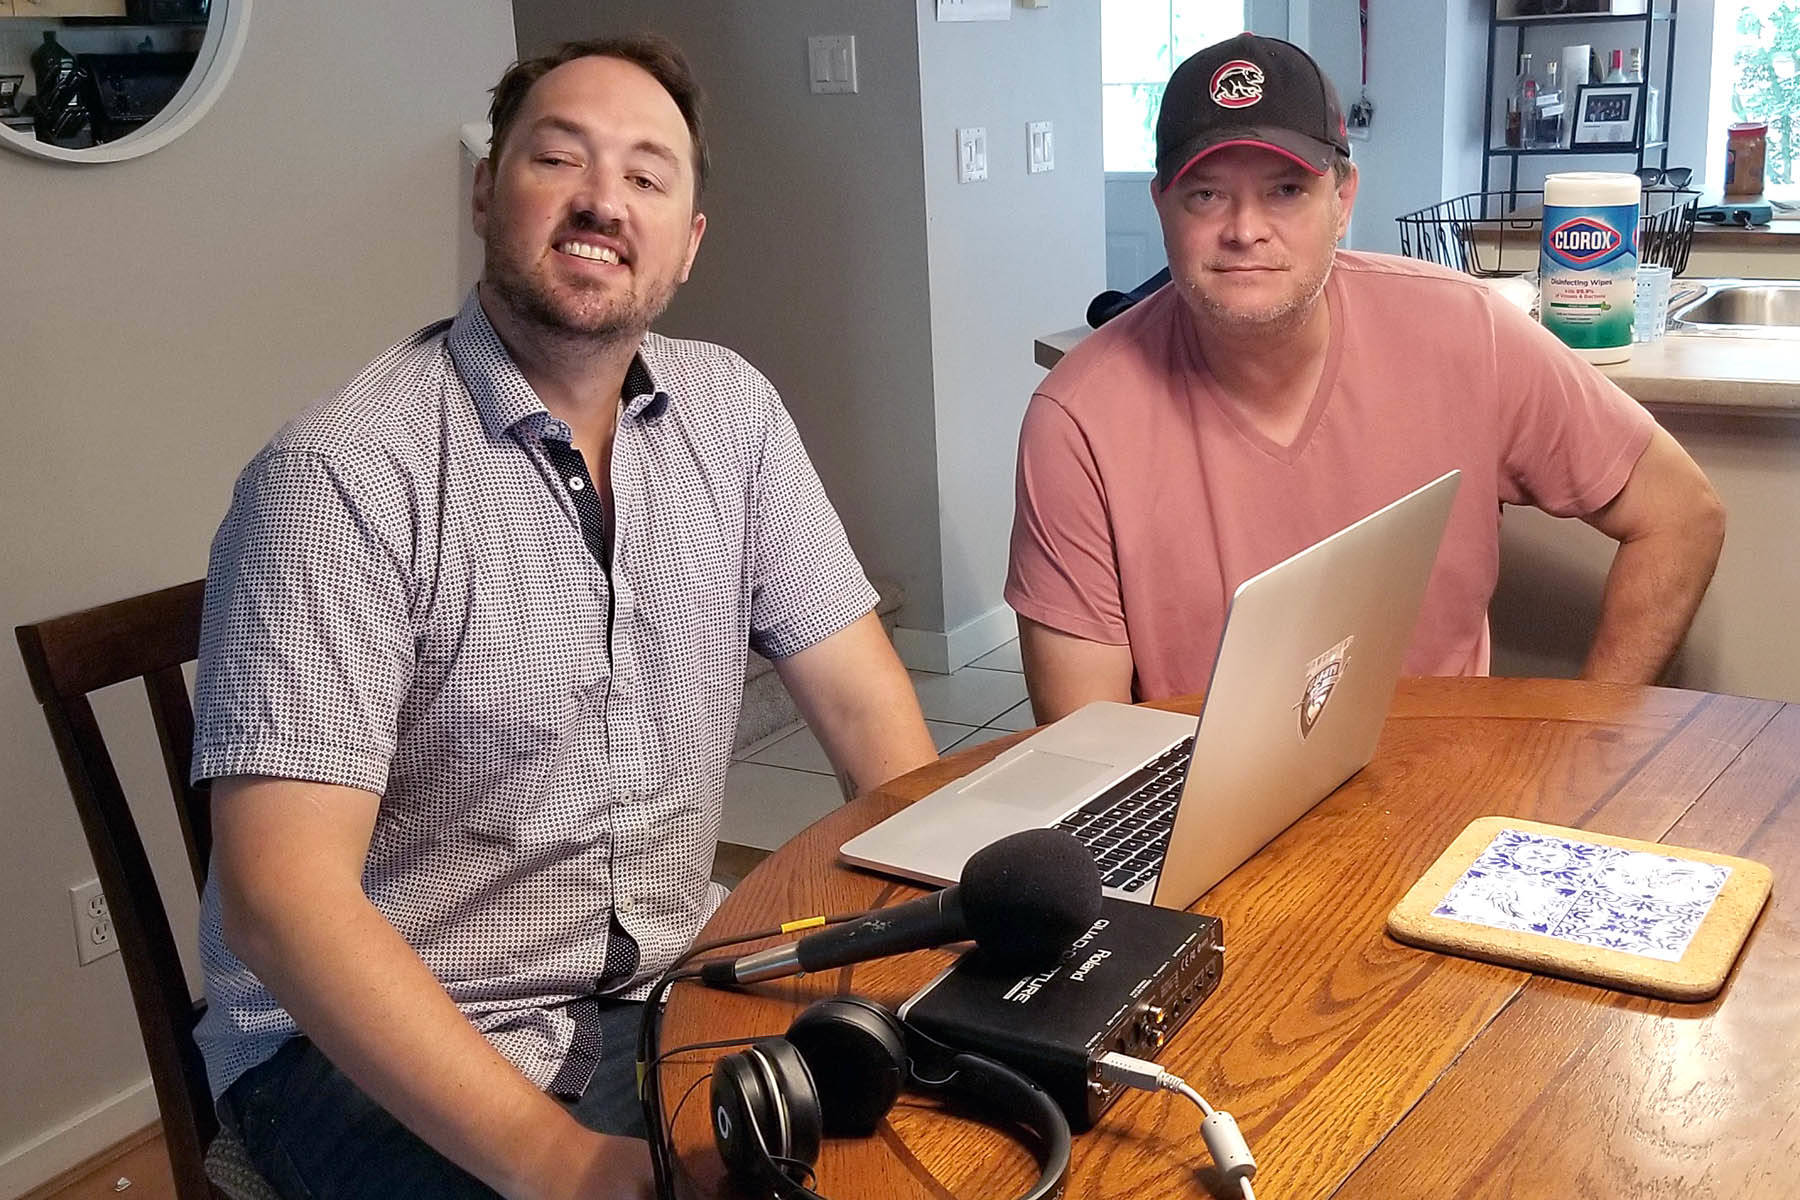 Vancouver Giants play-by-play broadcaster Dan O'Connor (left) and former Surrey Eagles head coach Mark Holick (right) have started a new sports podcast, The Voice & The Coach. The pair are longtime friends and former colleagues with the Prince George Cougars. (Nick Greenizan photo)